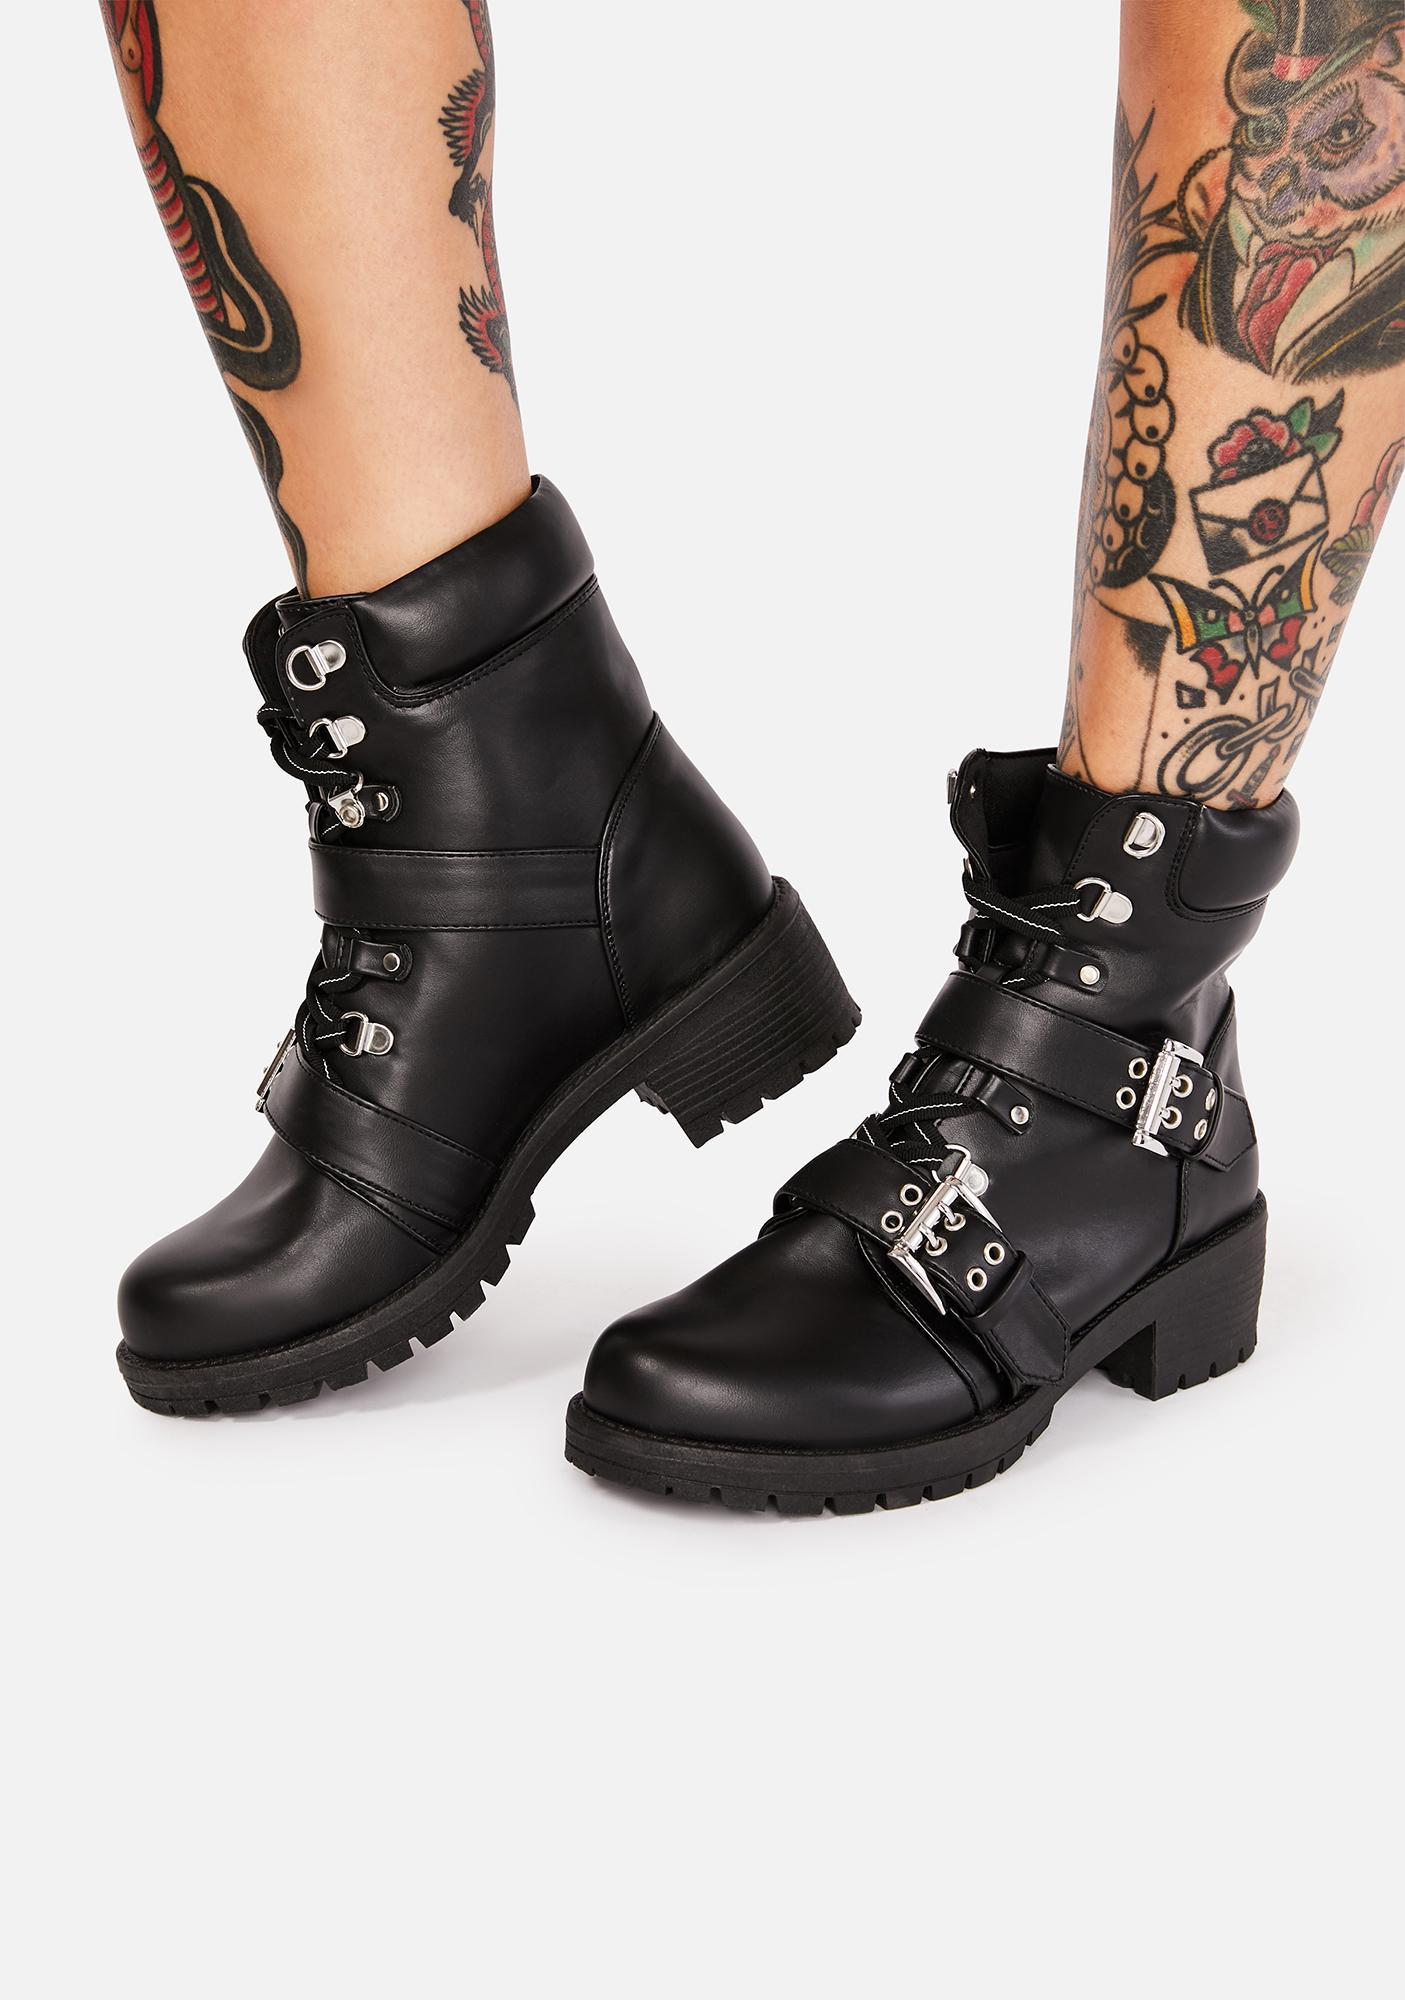 Wreak Havoc Buckle Boots